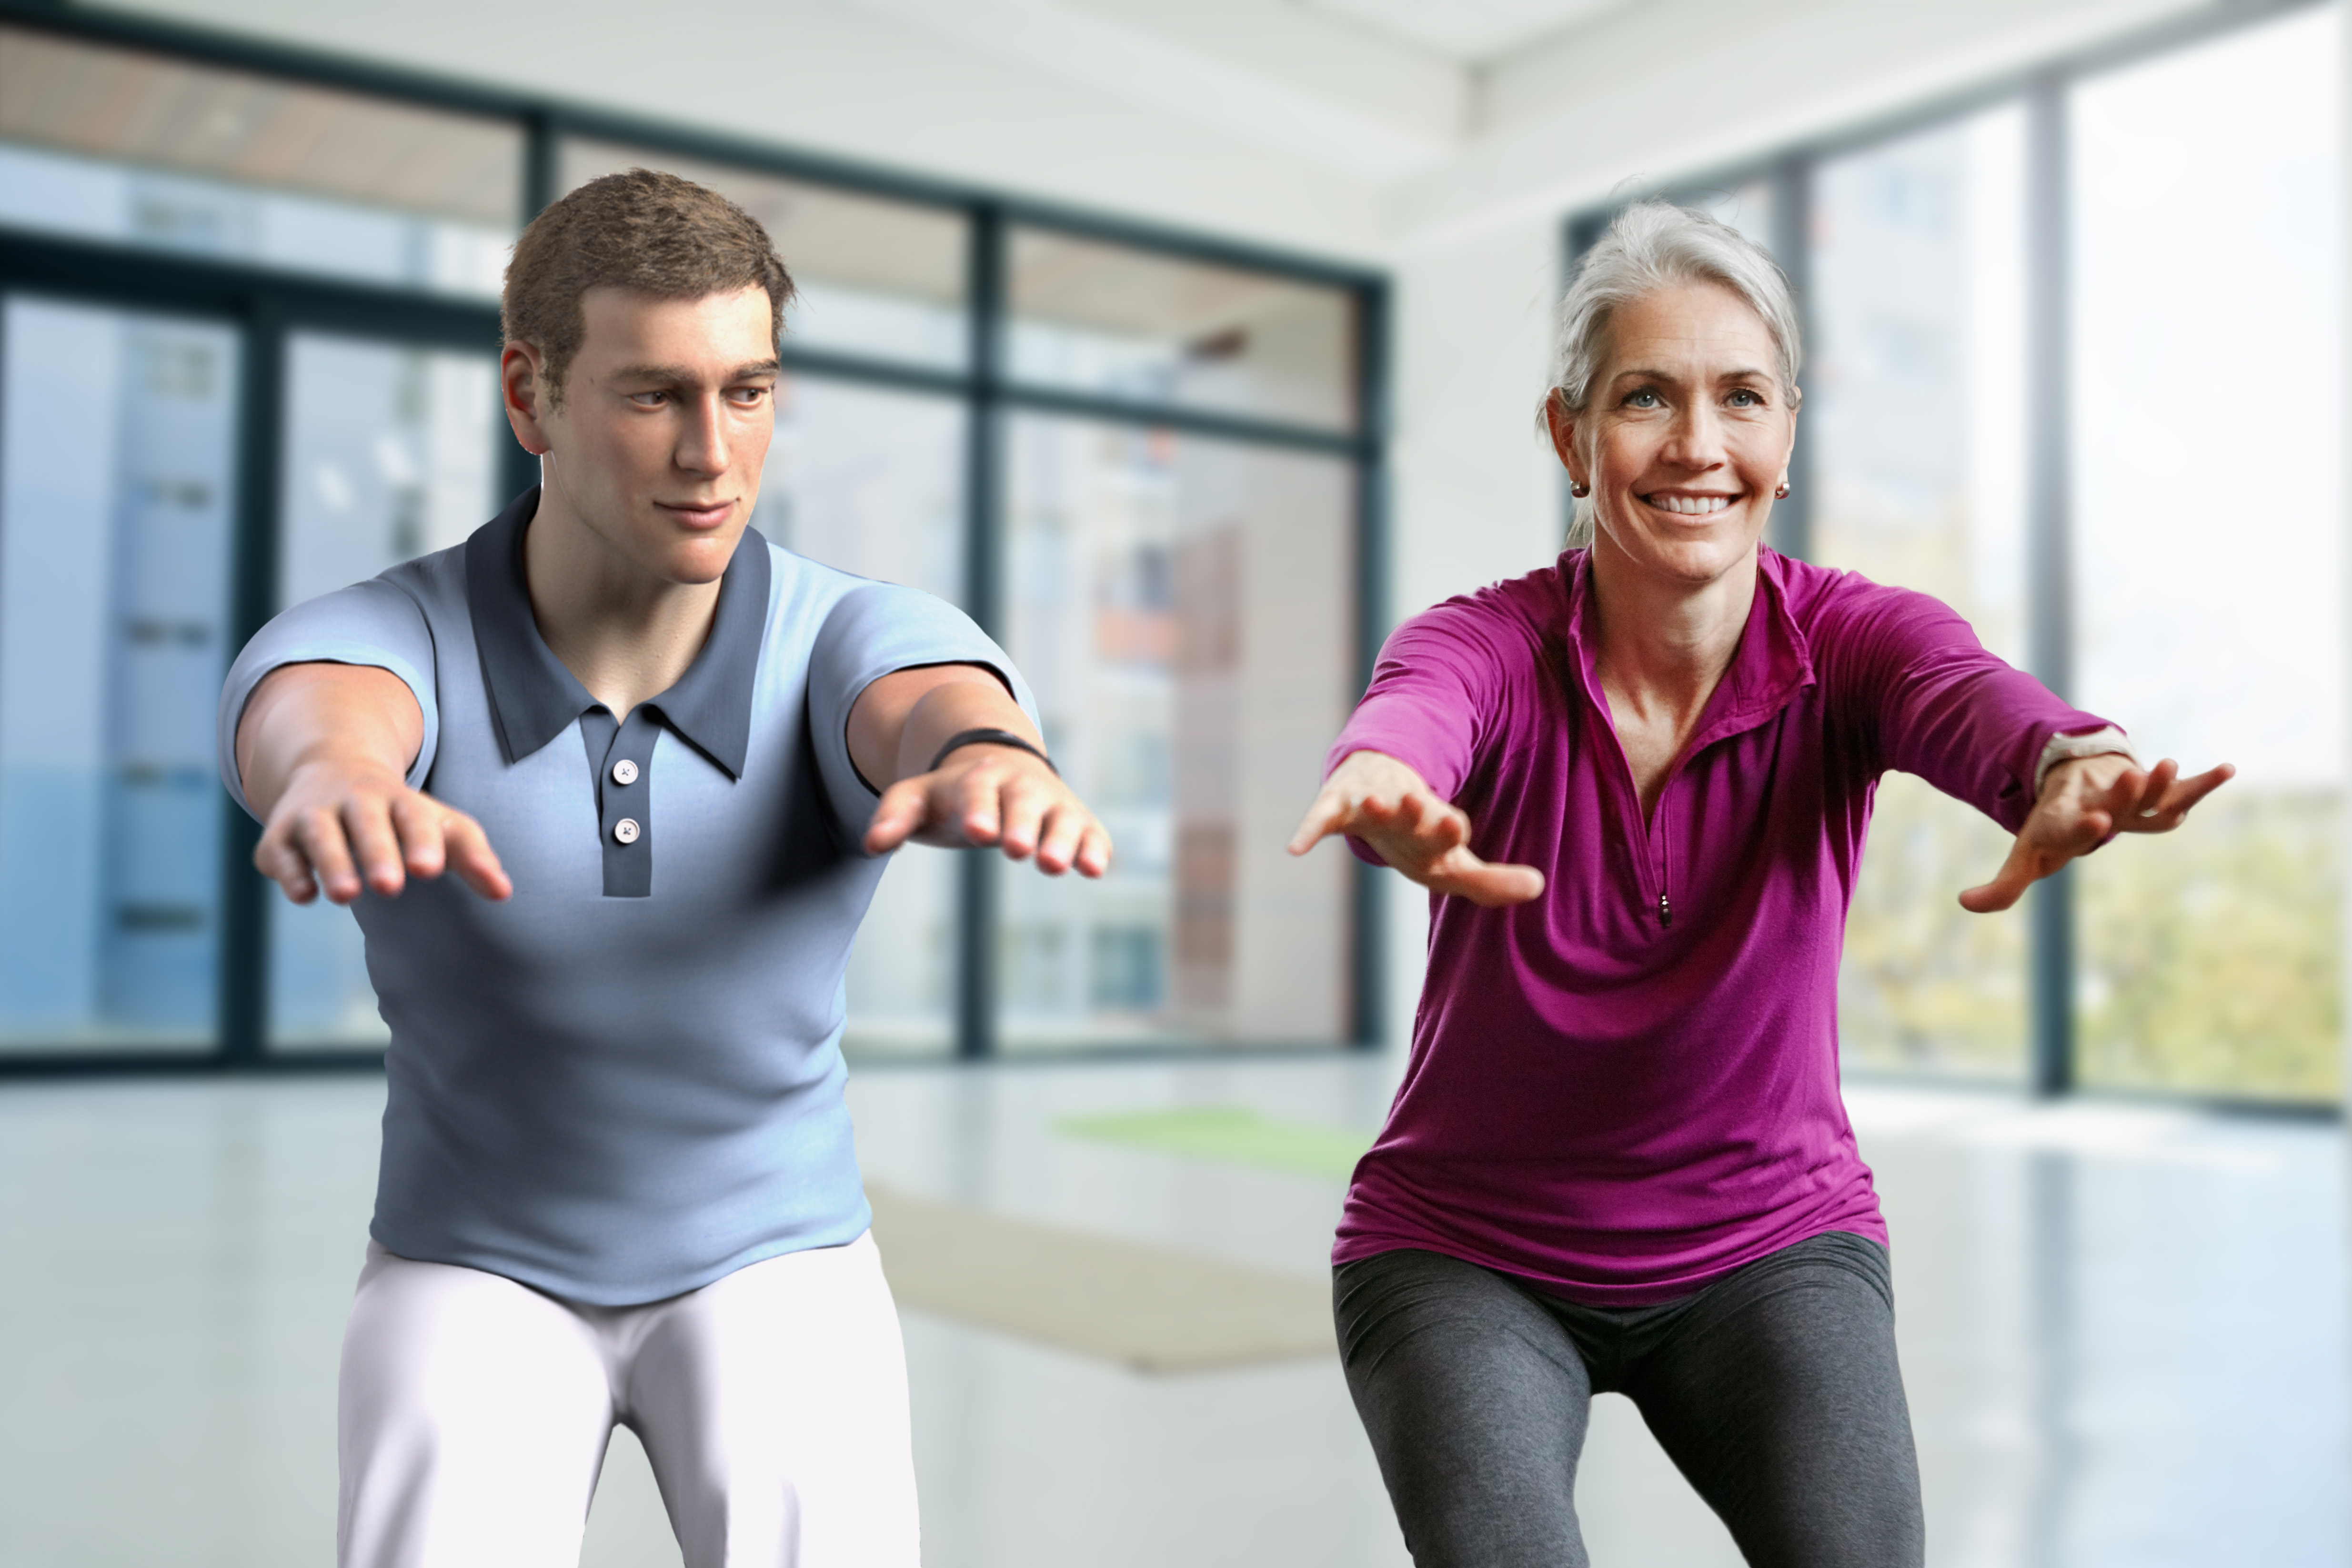 3D health and fitness coach